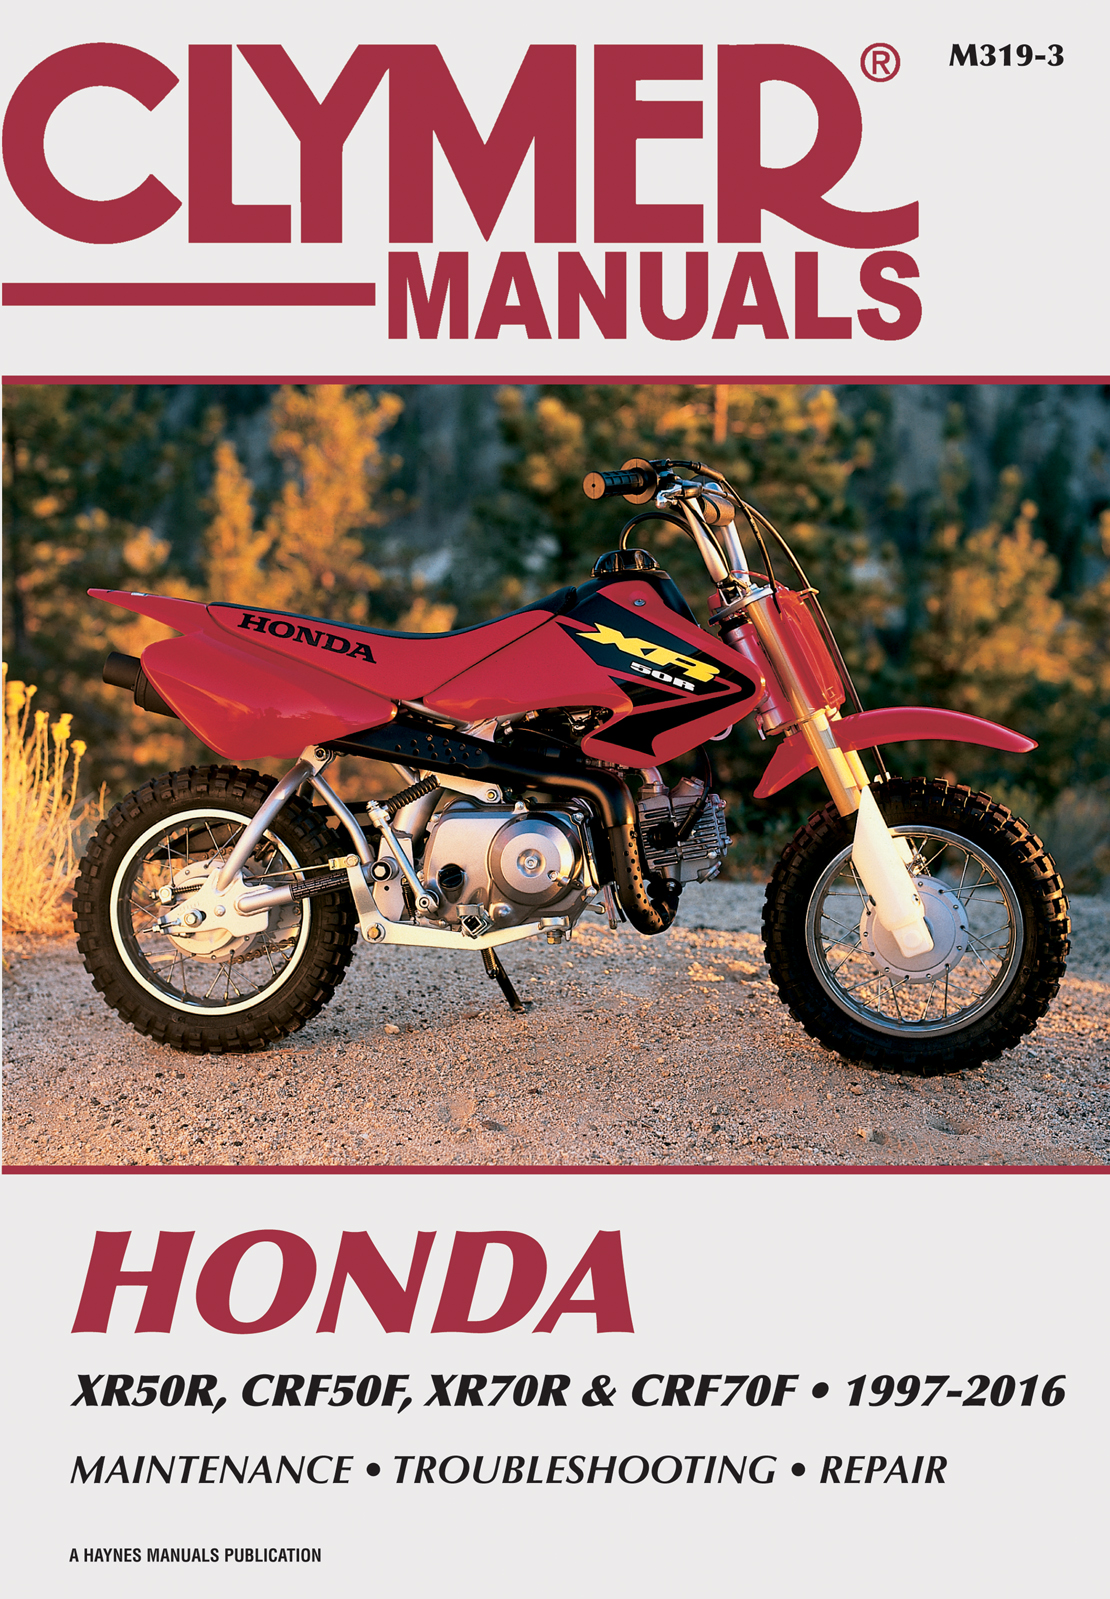 Honda_XR50R_CRF50F_XR70R_&_CRF70F_19972016_Clymer_Repair_Manual